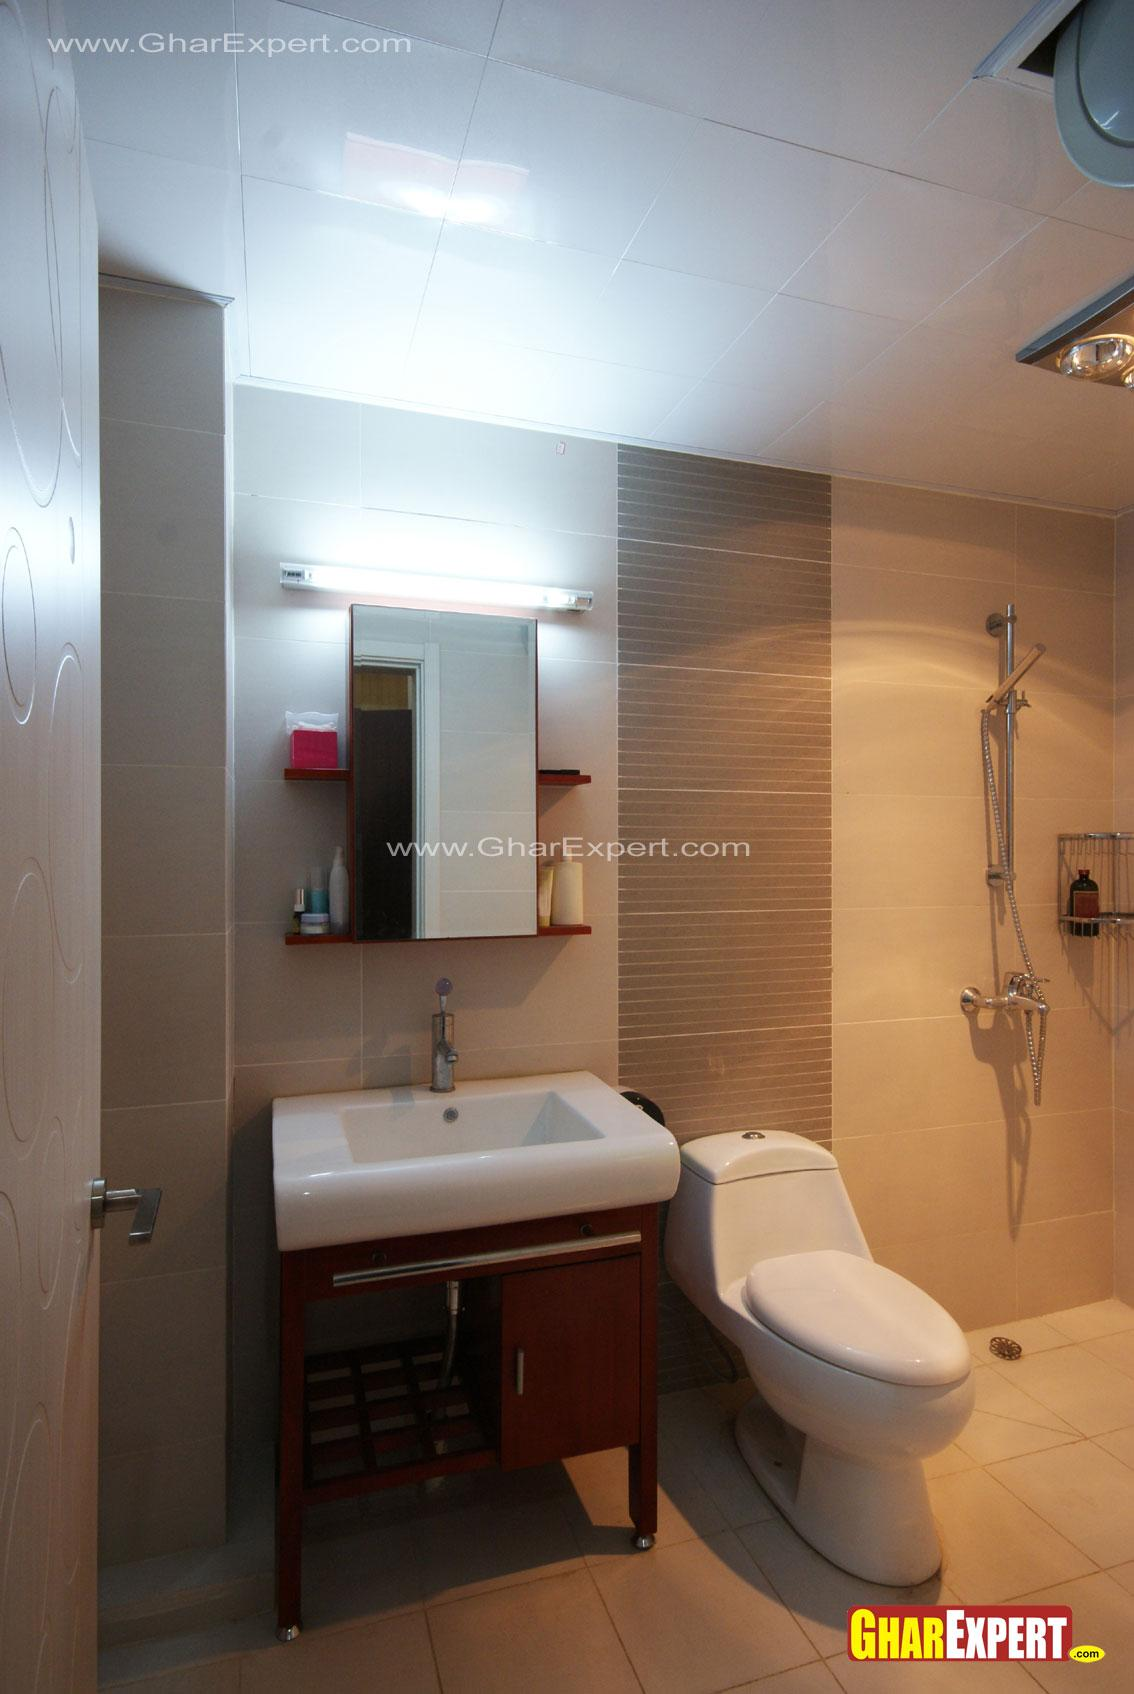 Indian bathroom designs - Interior Design Photos For Small Flats In Mumbai Home Decor